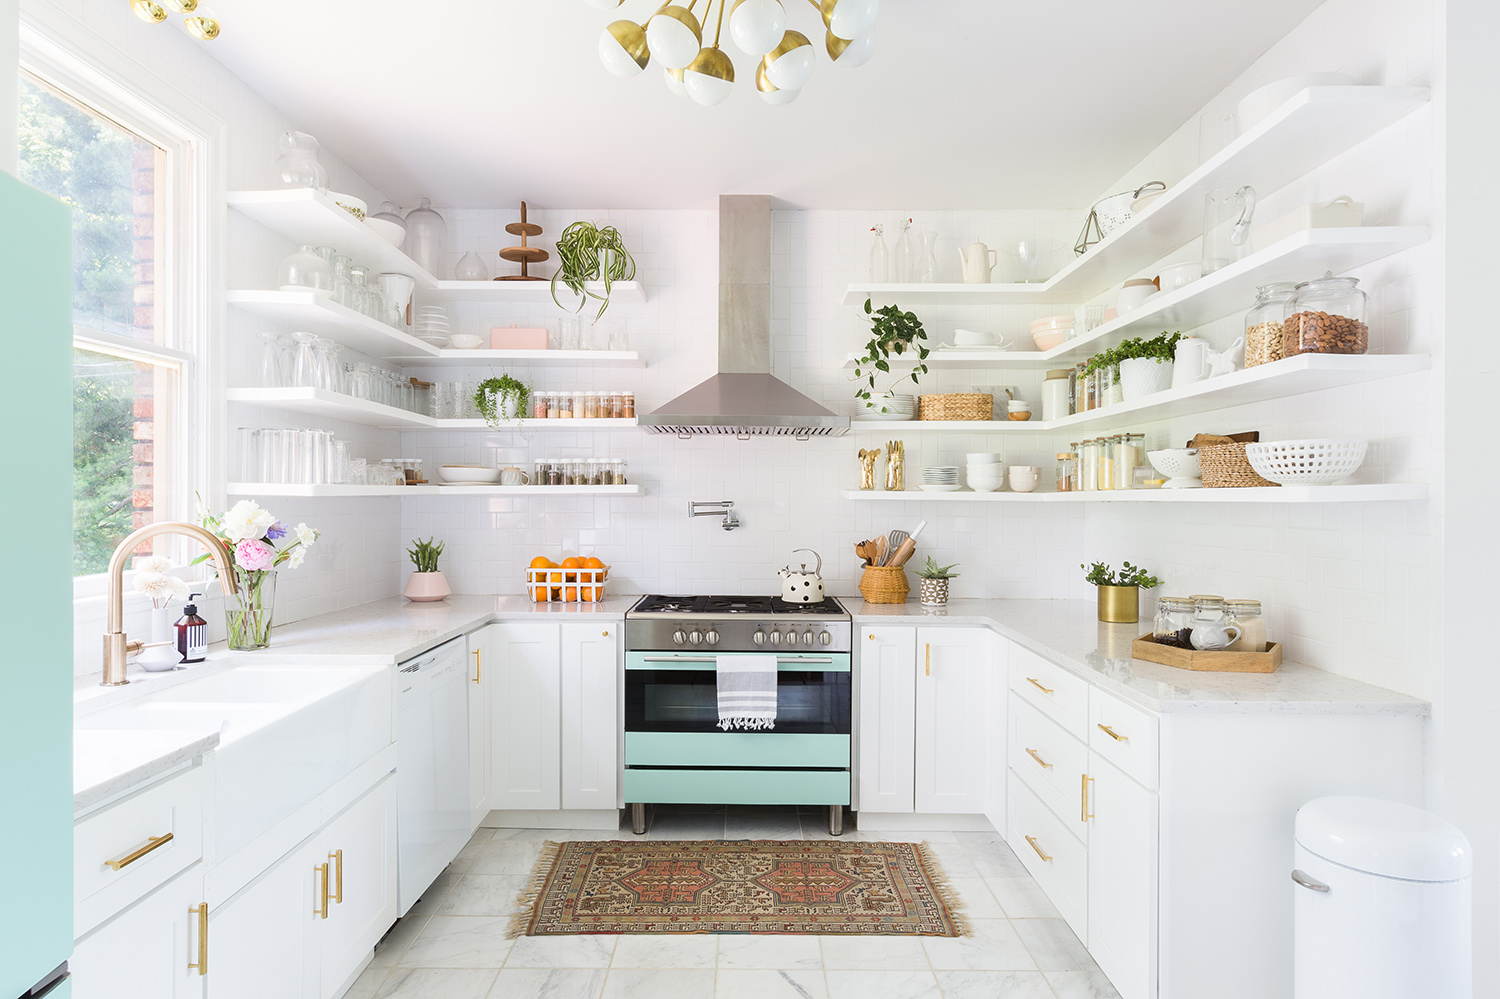 How I Recolored My Kitchen Appliances - A Beautiful Mess